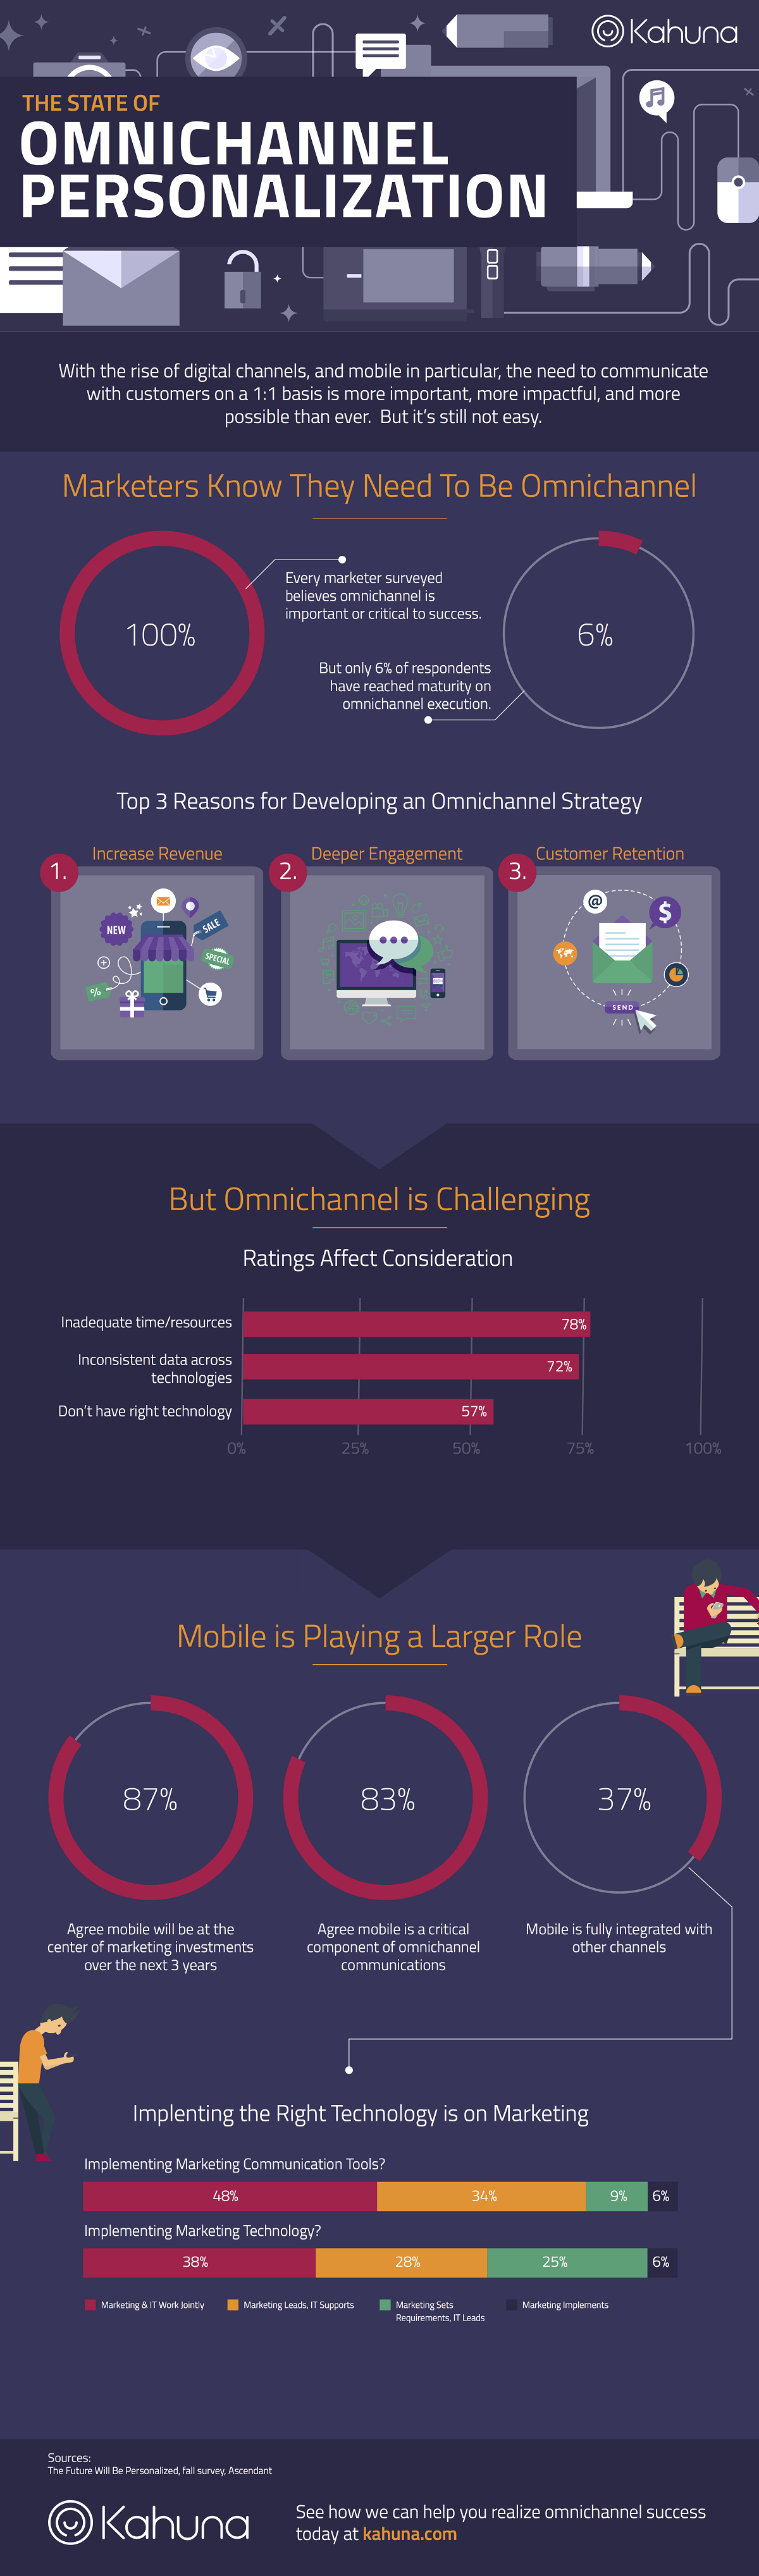 The State of Omni channel Personalization #Infographic